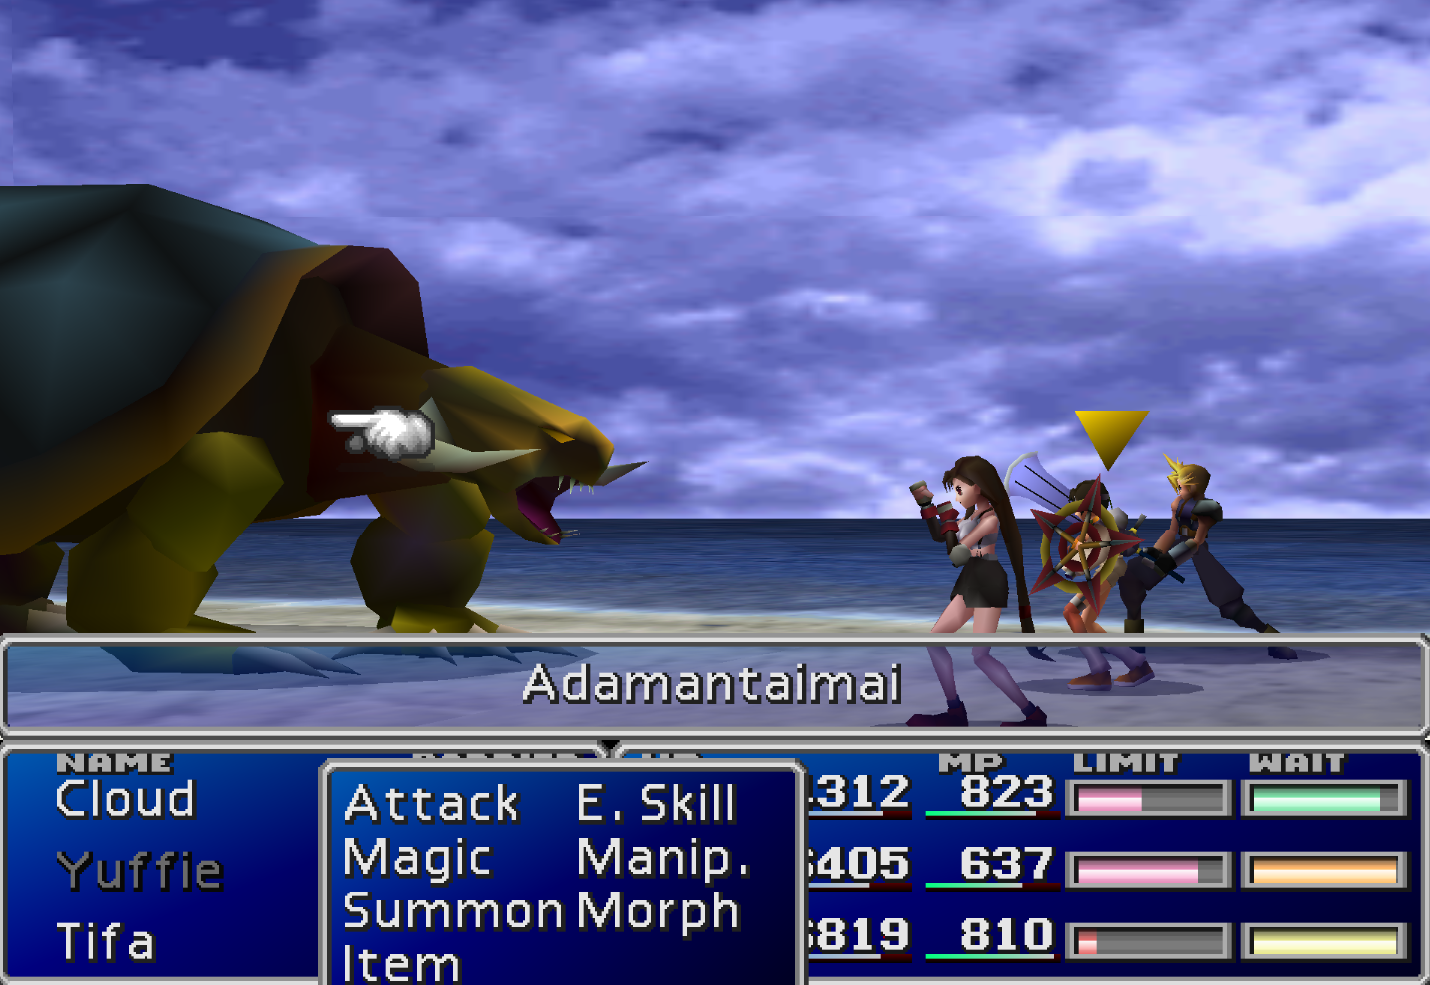 Adamantaimai enemy FF7